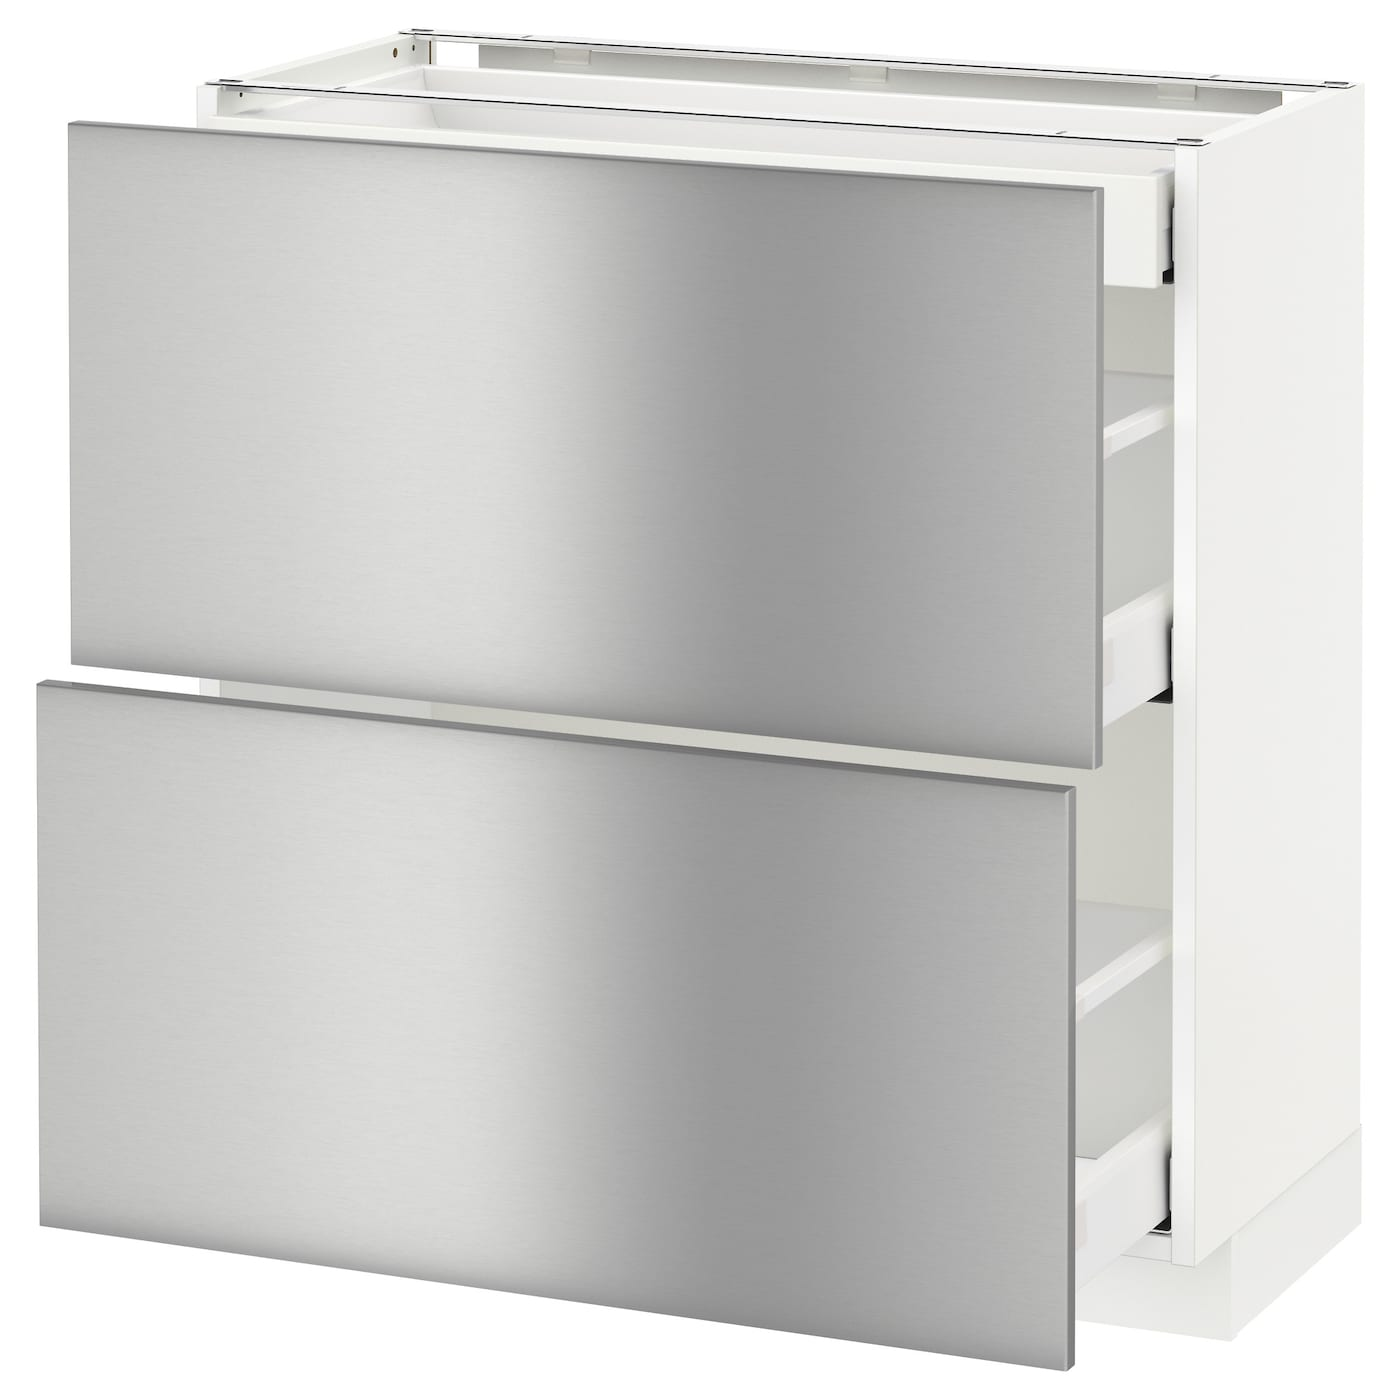 IKEA METOD/MAXIMERA base cab with 2 fronts/3 drawers Smooth-running drawers with stop.